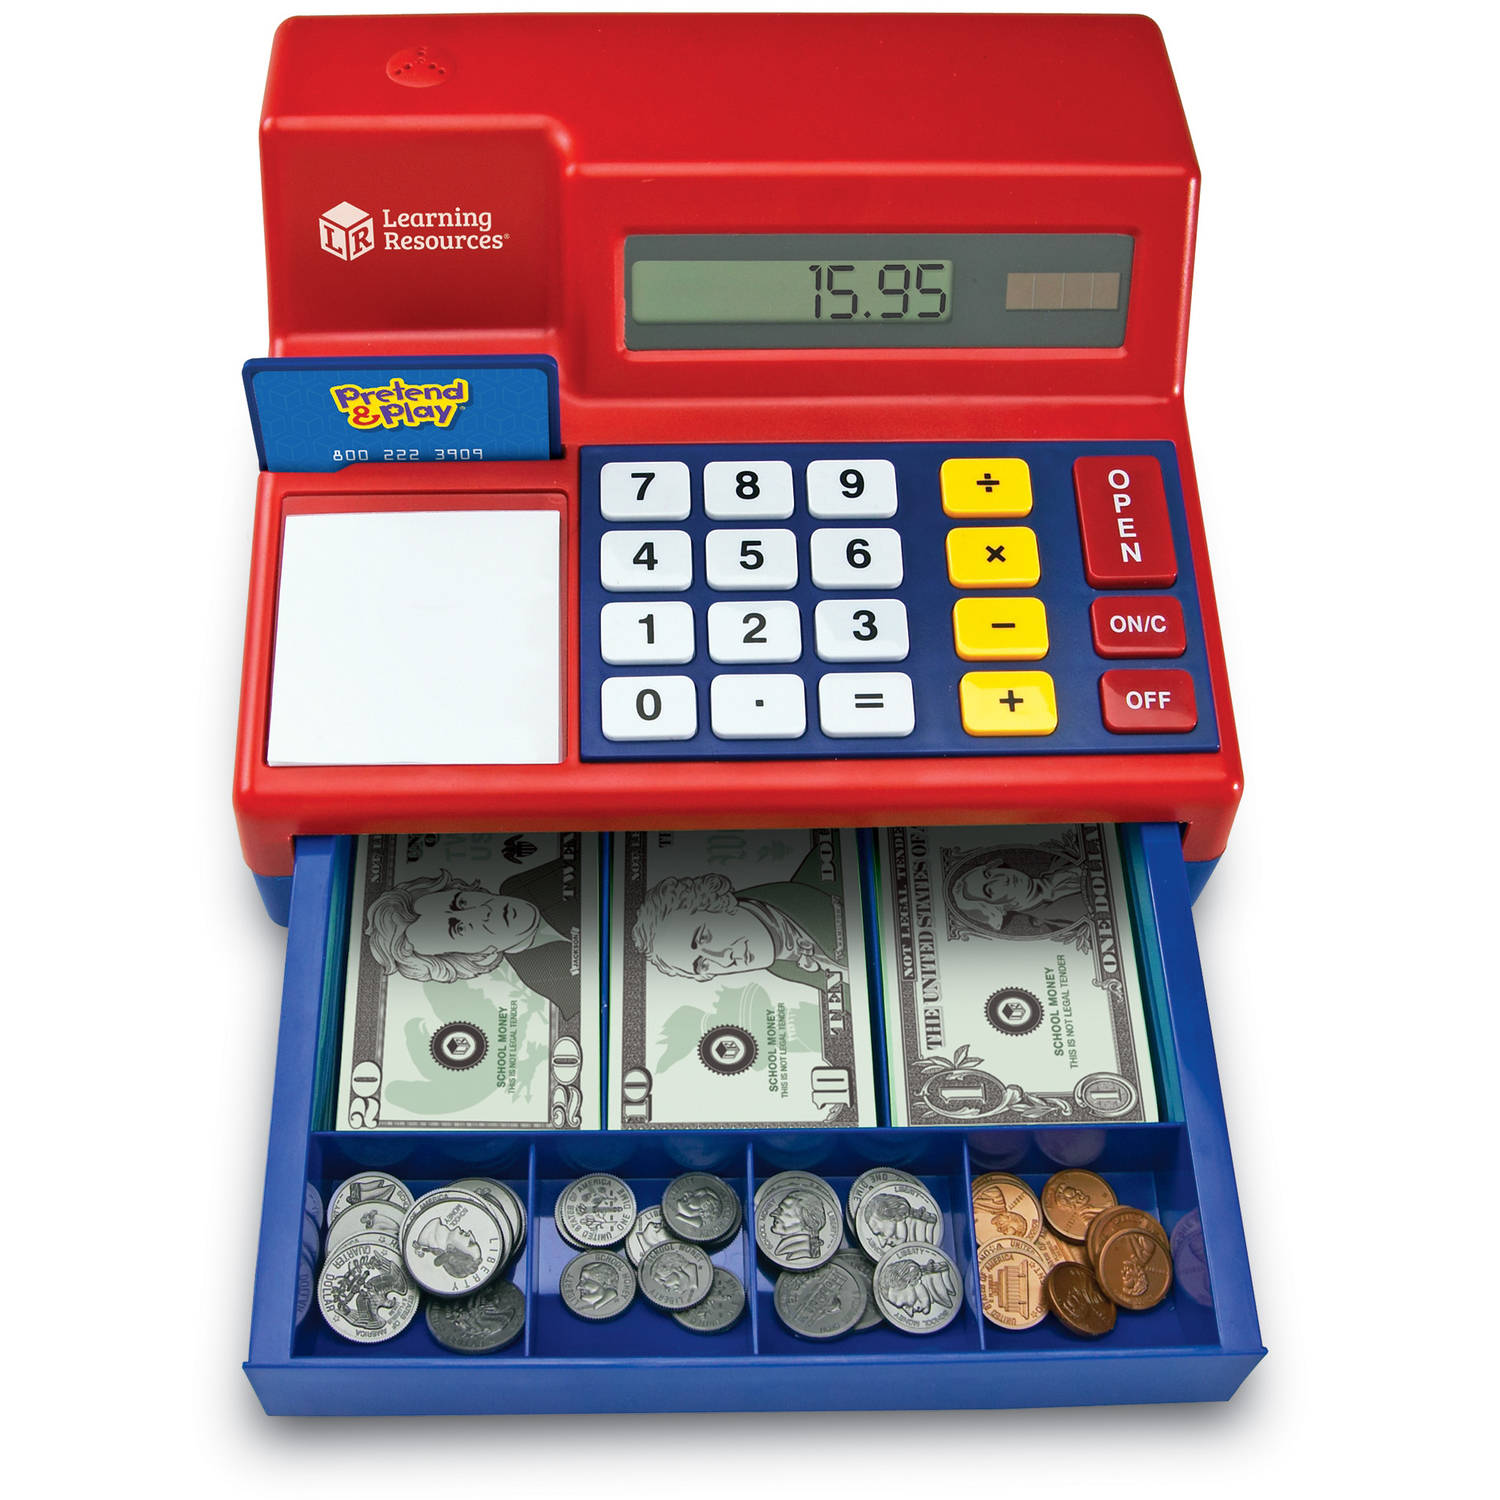 learning resources pretend and play calculator cash register learning resources pretend and play calculator cash register com